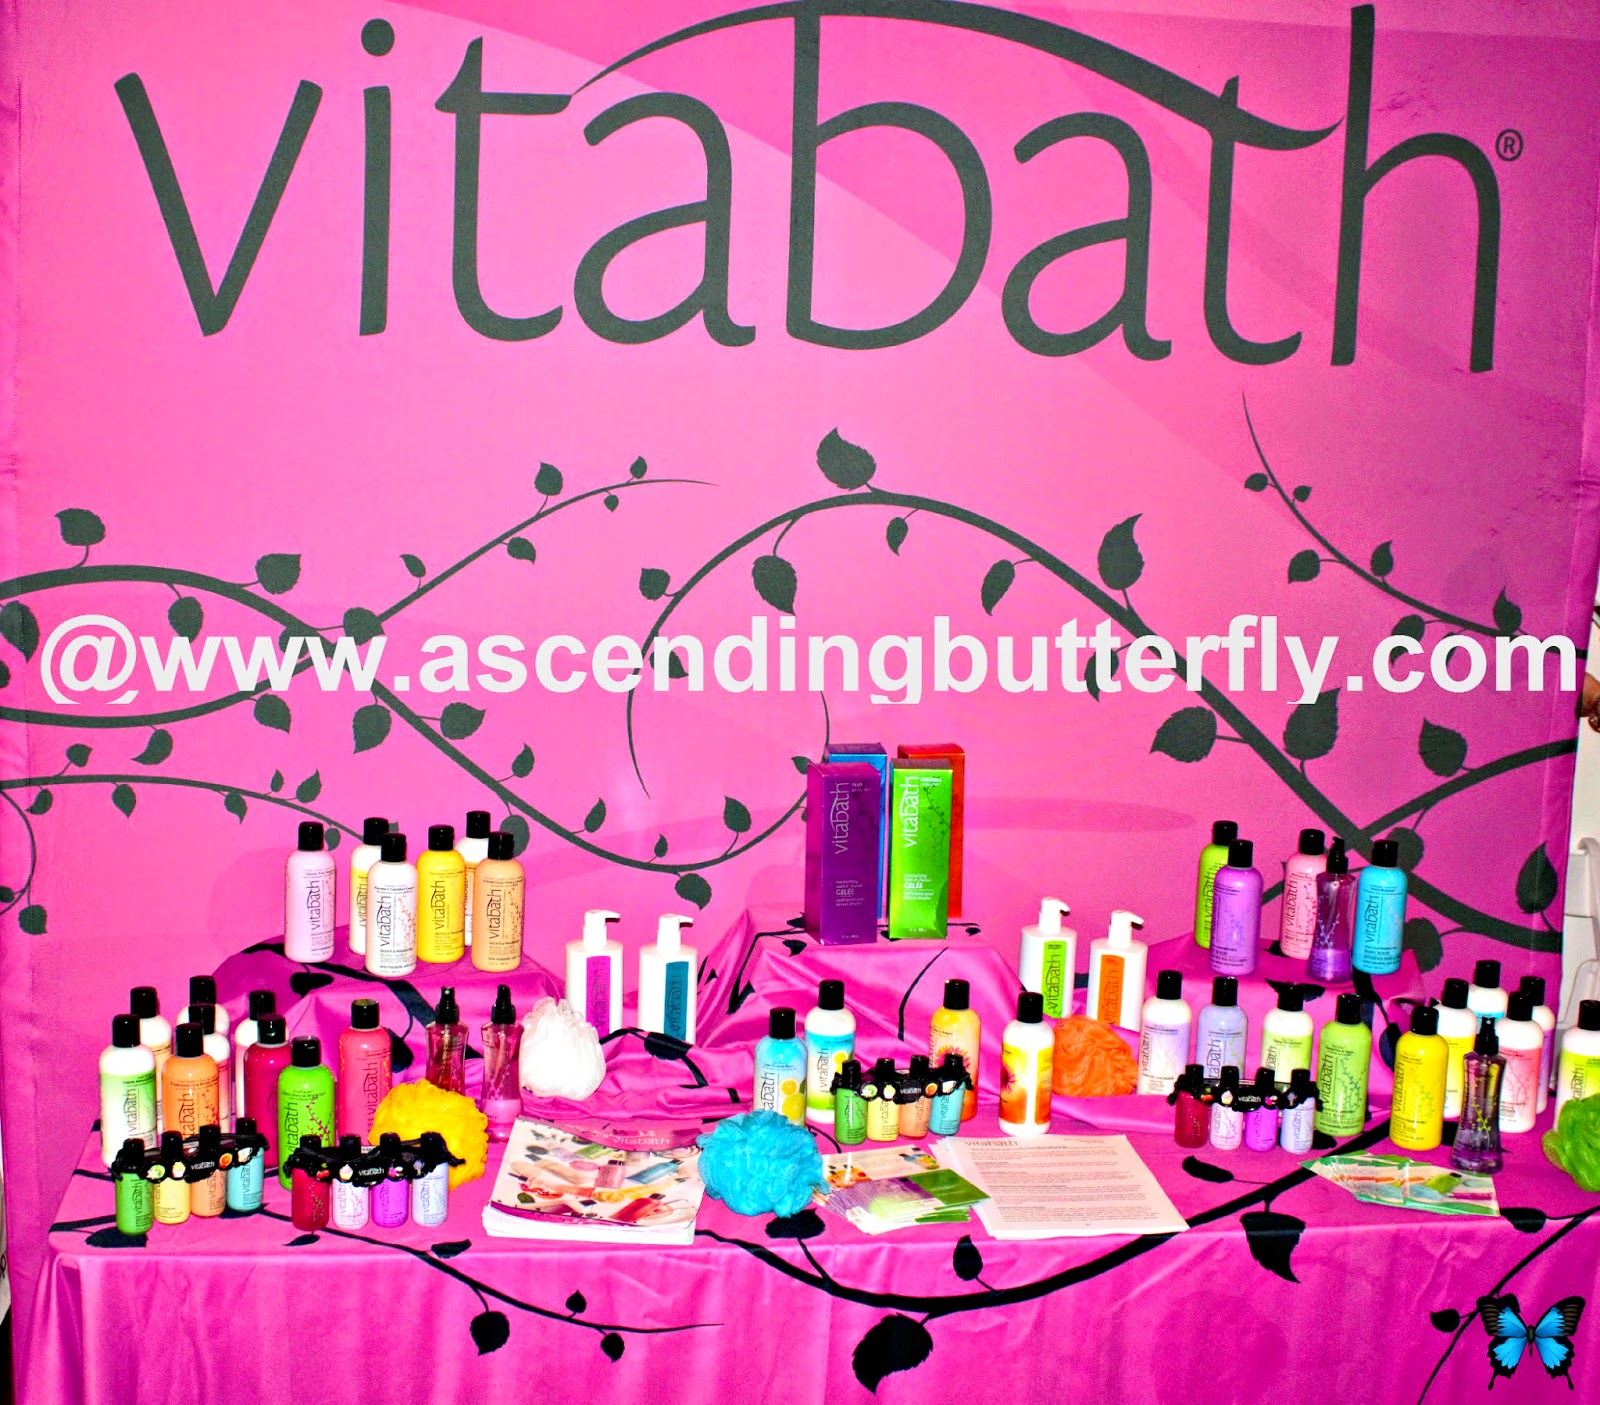 Vitabath at Getting Gorgeous 2014